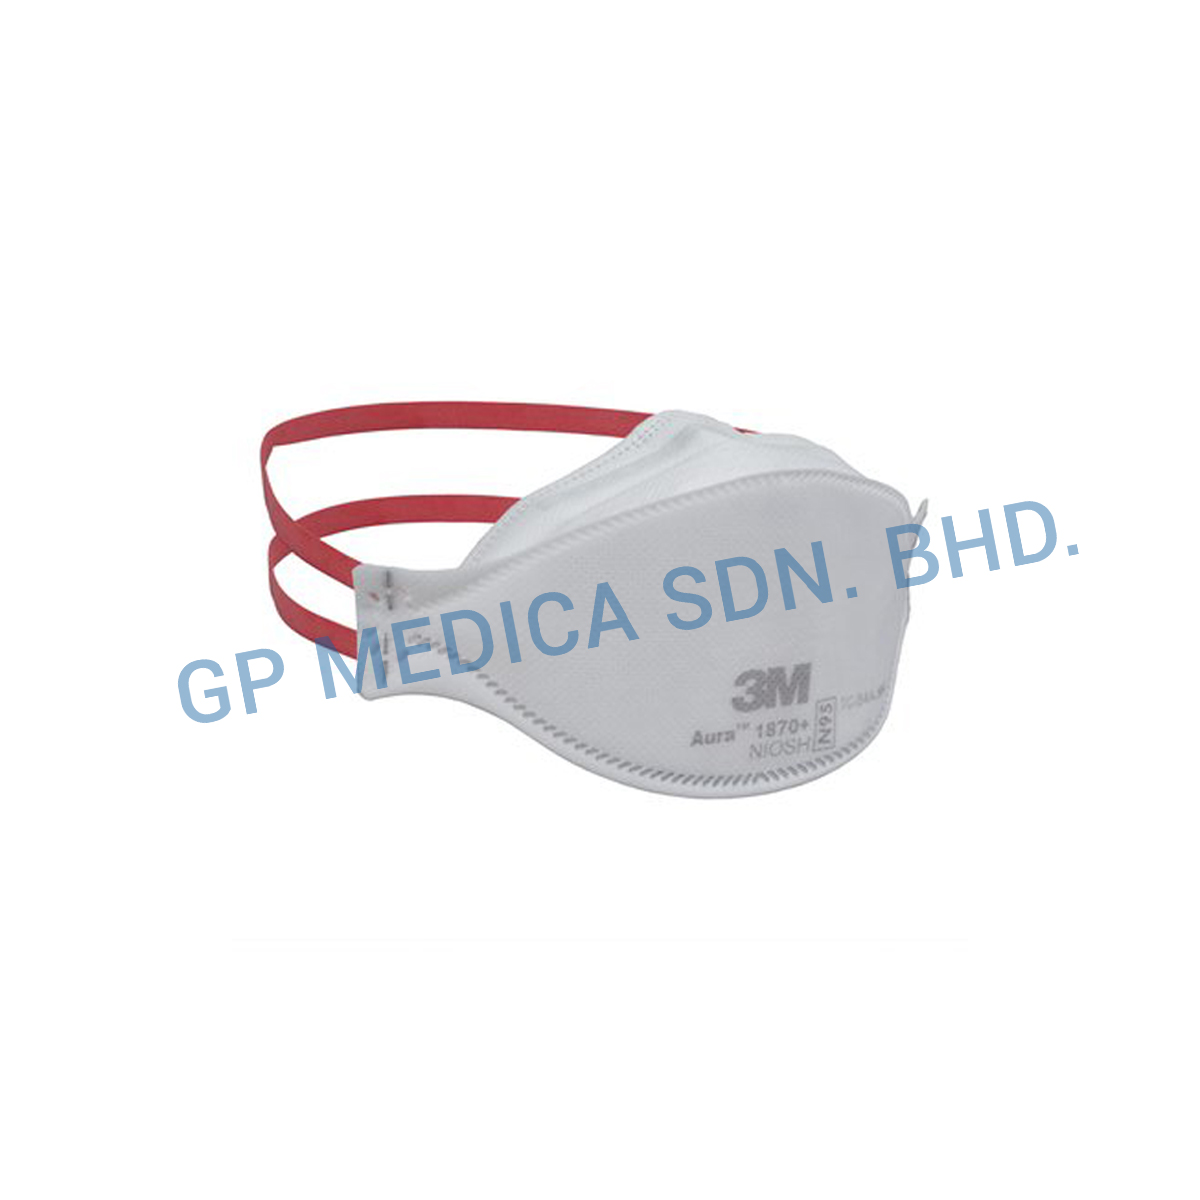 3M Aura Health Care Particulate Respirator and Surgical Mask 1870+, N95-2